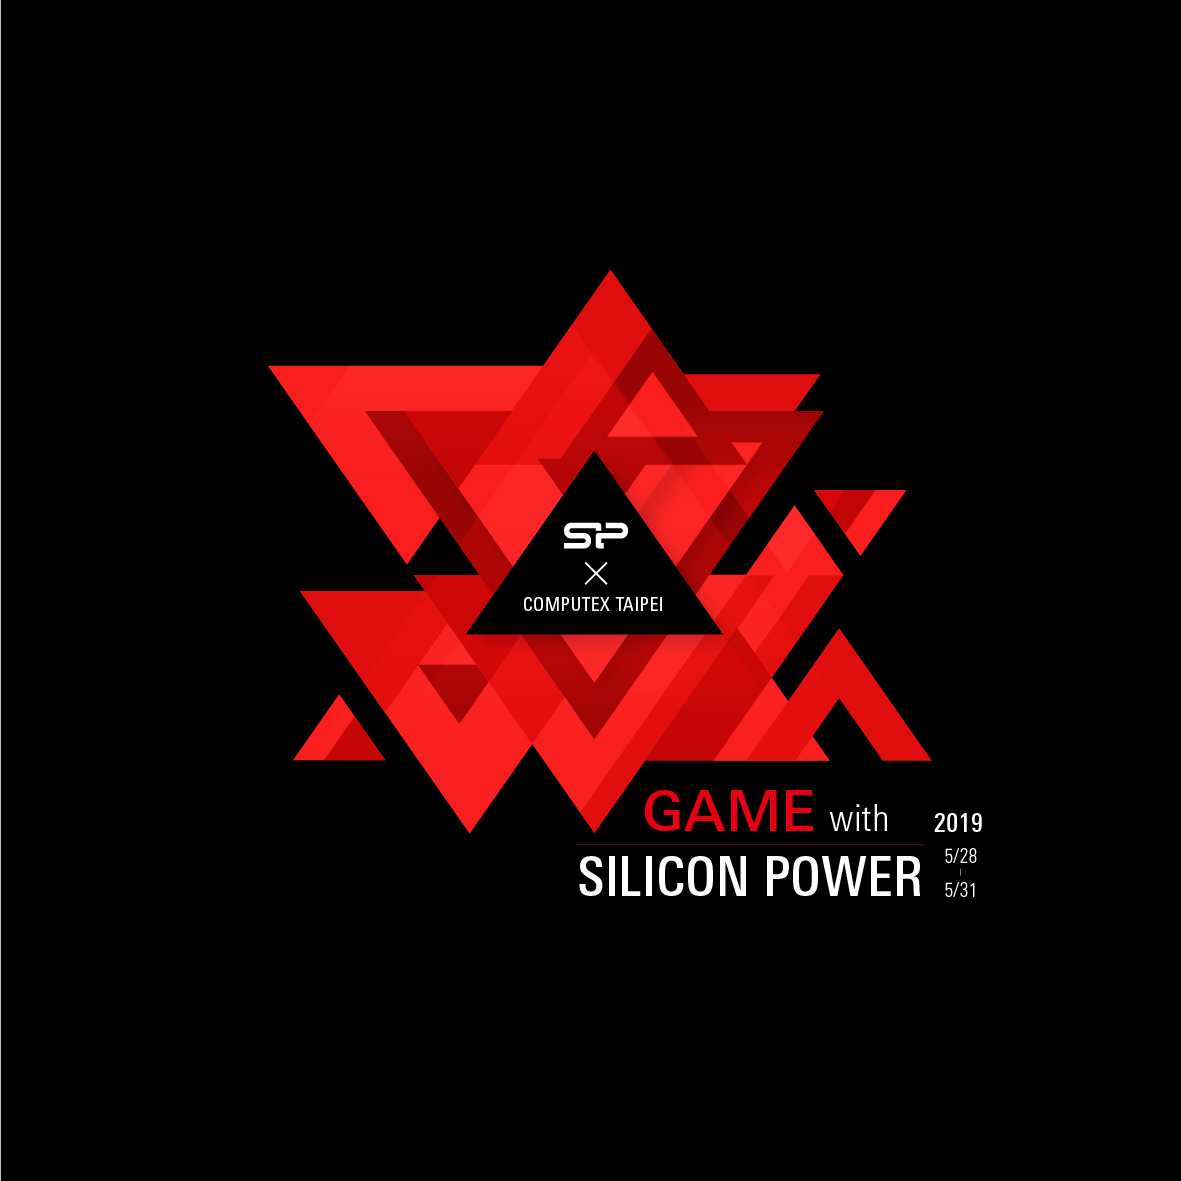 With Upcoming Computex, Silicon Power Wins Prestigious Design Award